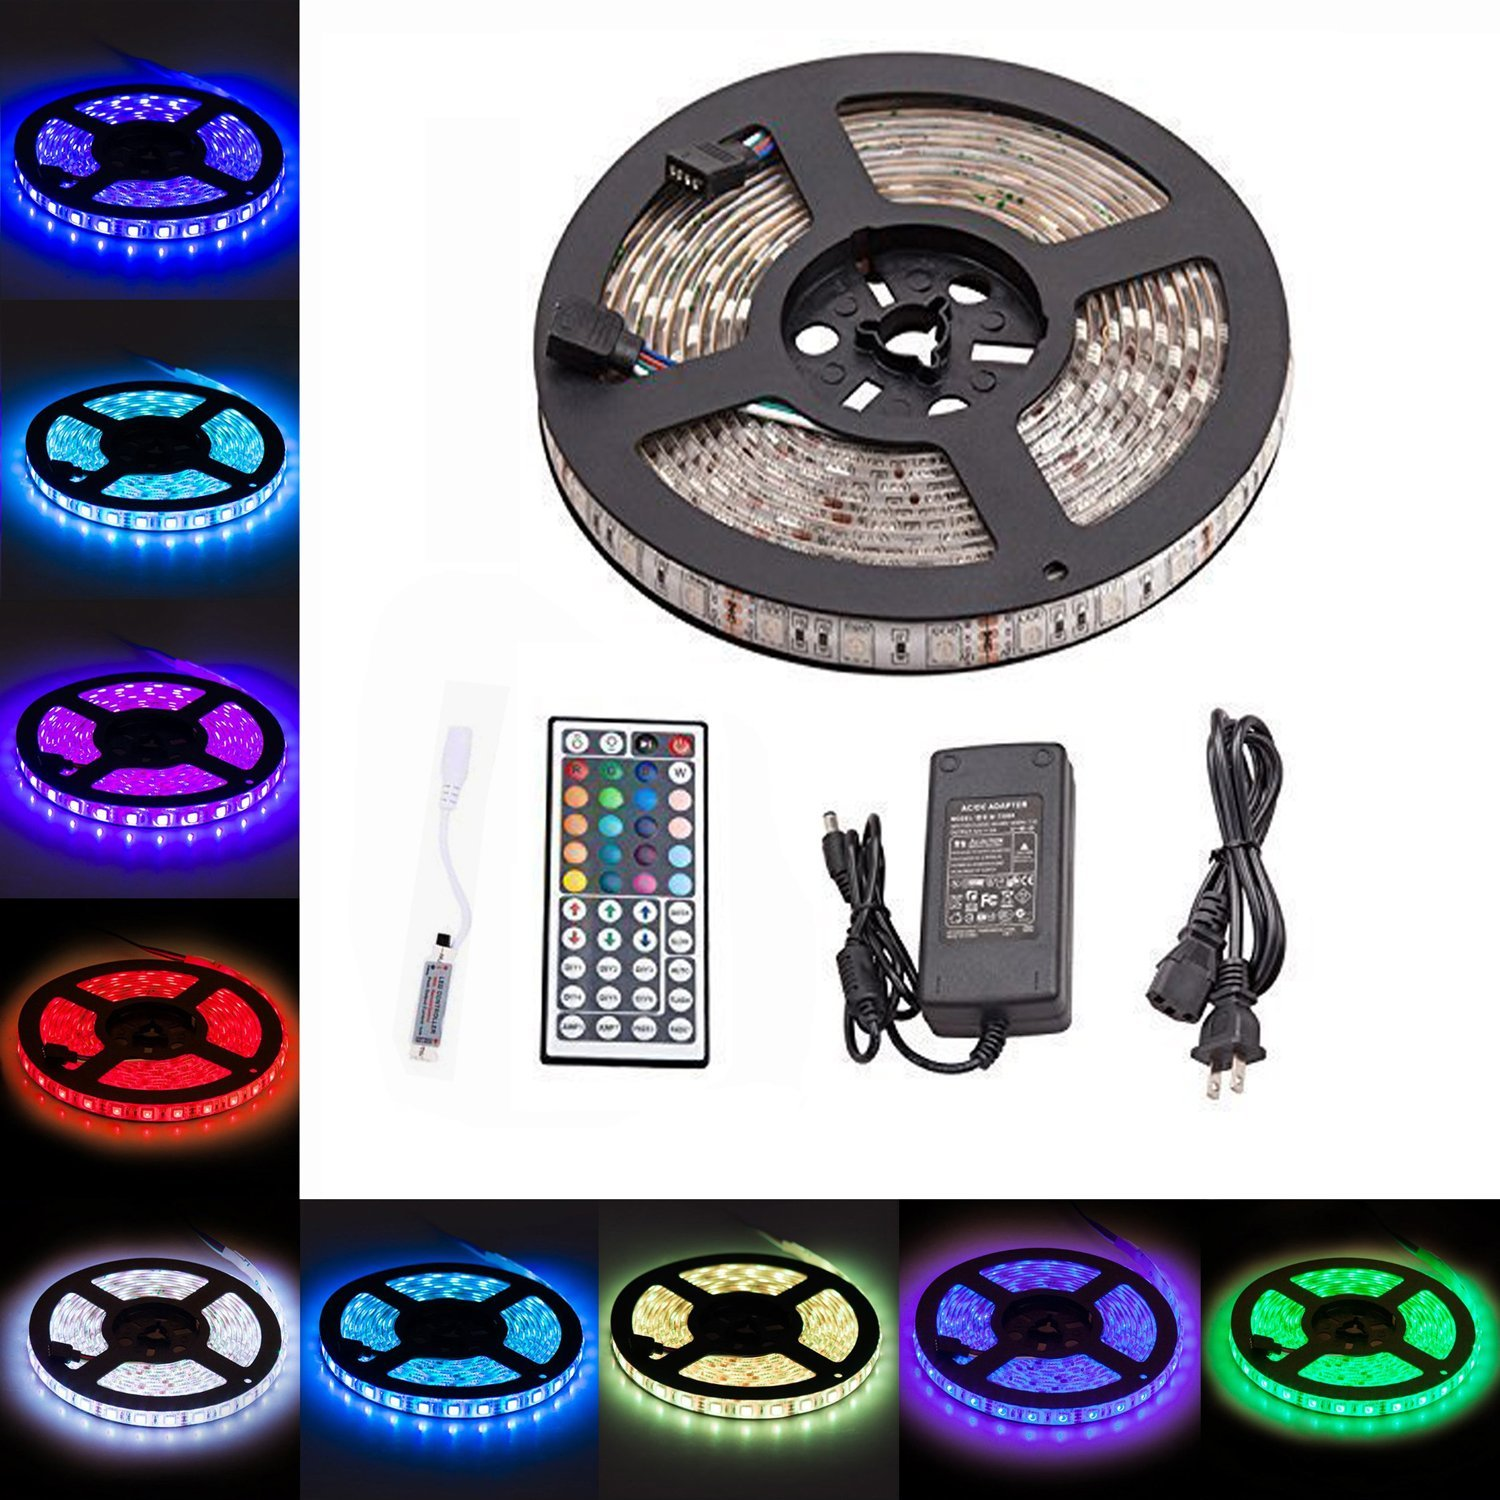 LTROP Led Strip Lights Kit - Waterproof SMD 5050 16.4 Ft (5M) 300leds RGB 60leds/m with Mini 44key IR Remote Controller and 12V 5A Power Supply for Kicthen Bedroom Sitting Room and Outdoor